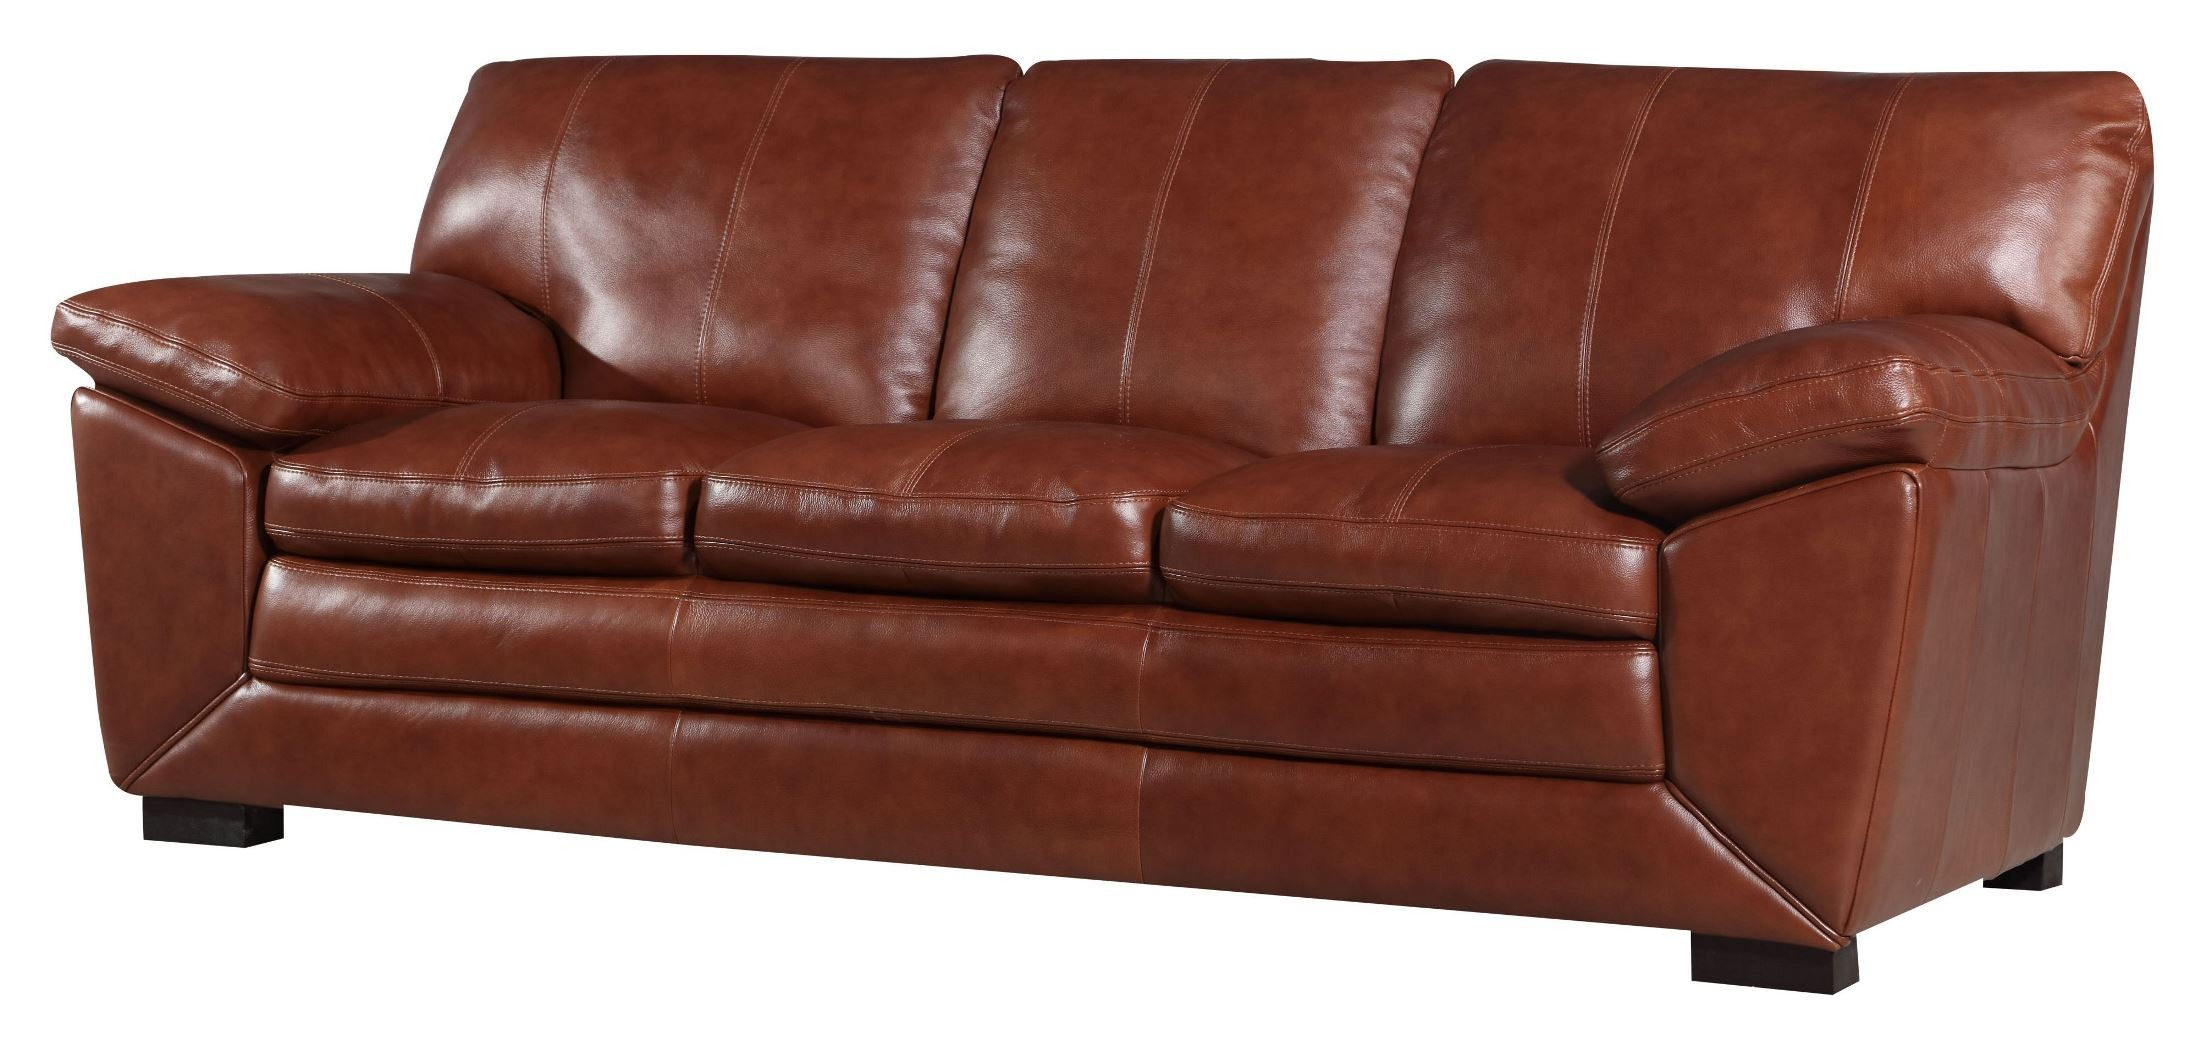 Maeser Pecan Leather Sofa From Luxe Coleman